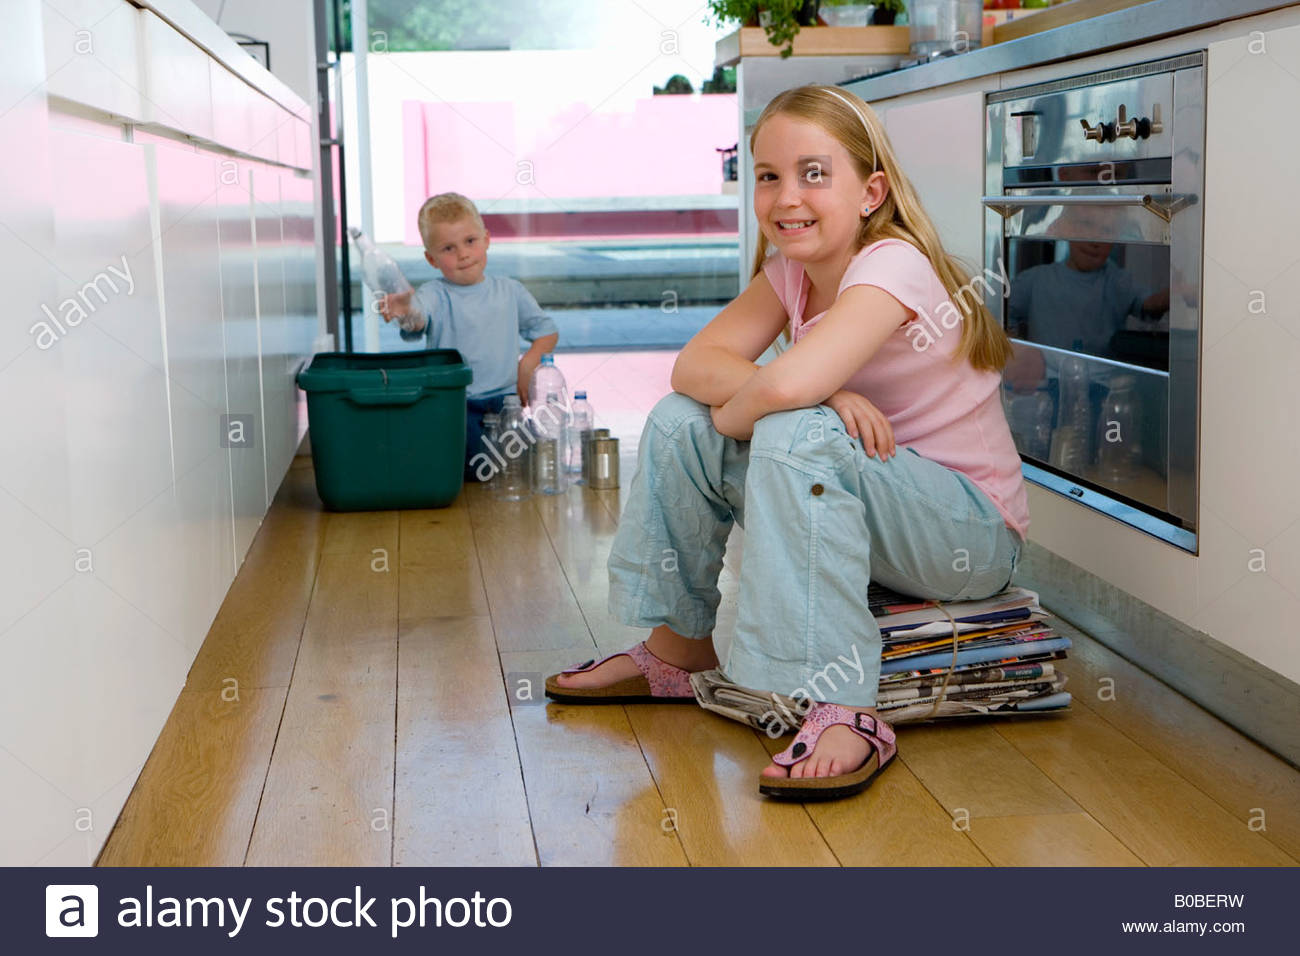 Girl  on newspaper bundle in kitchen, brother 2-4 putting recycling into bin in background, smiling, portrait - Stock Image